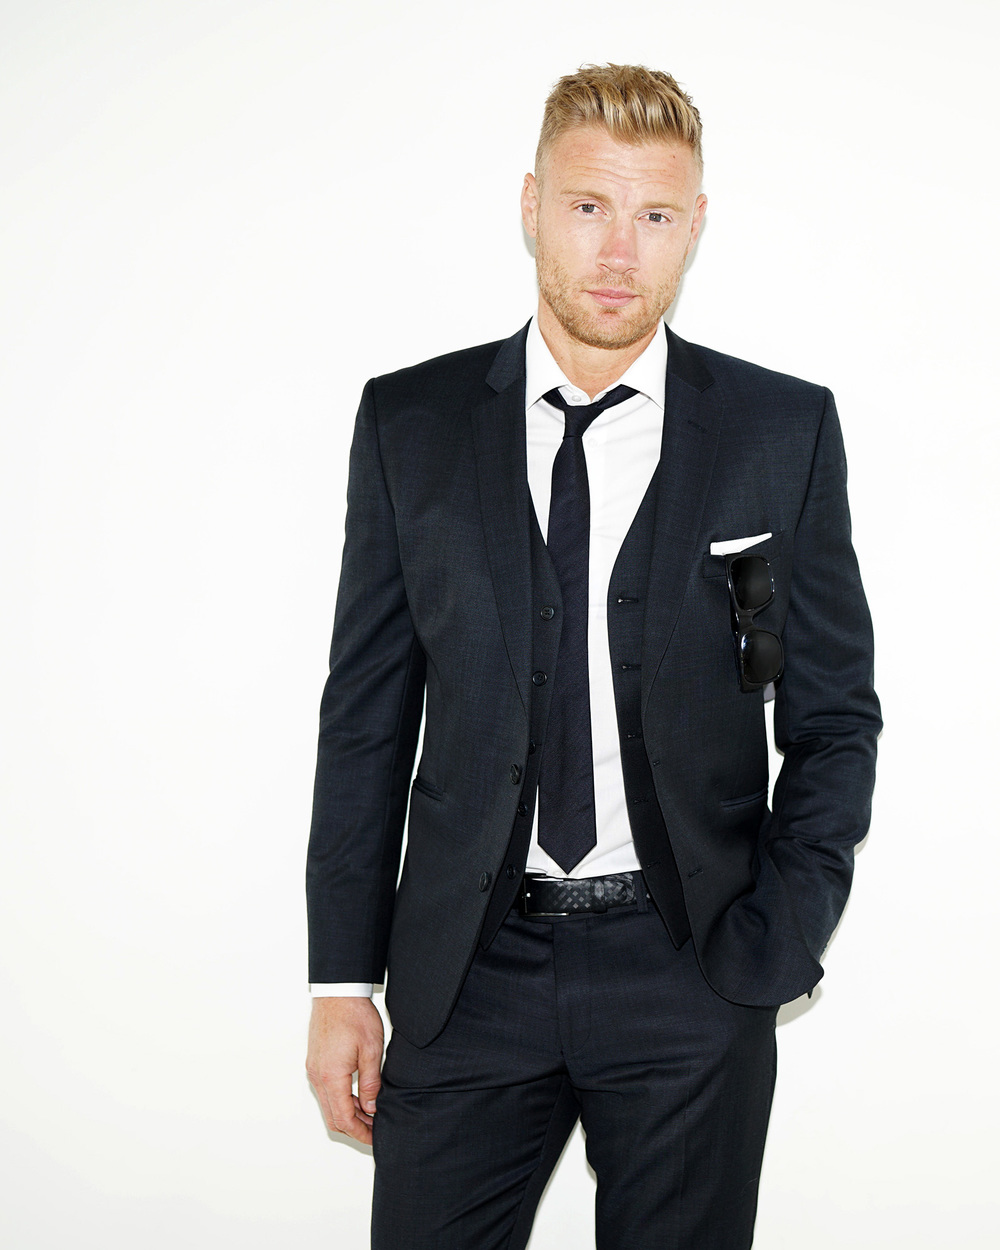 Stockdale_Flintoff7.jpg